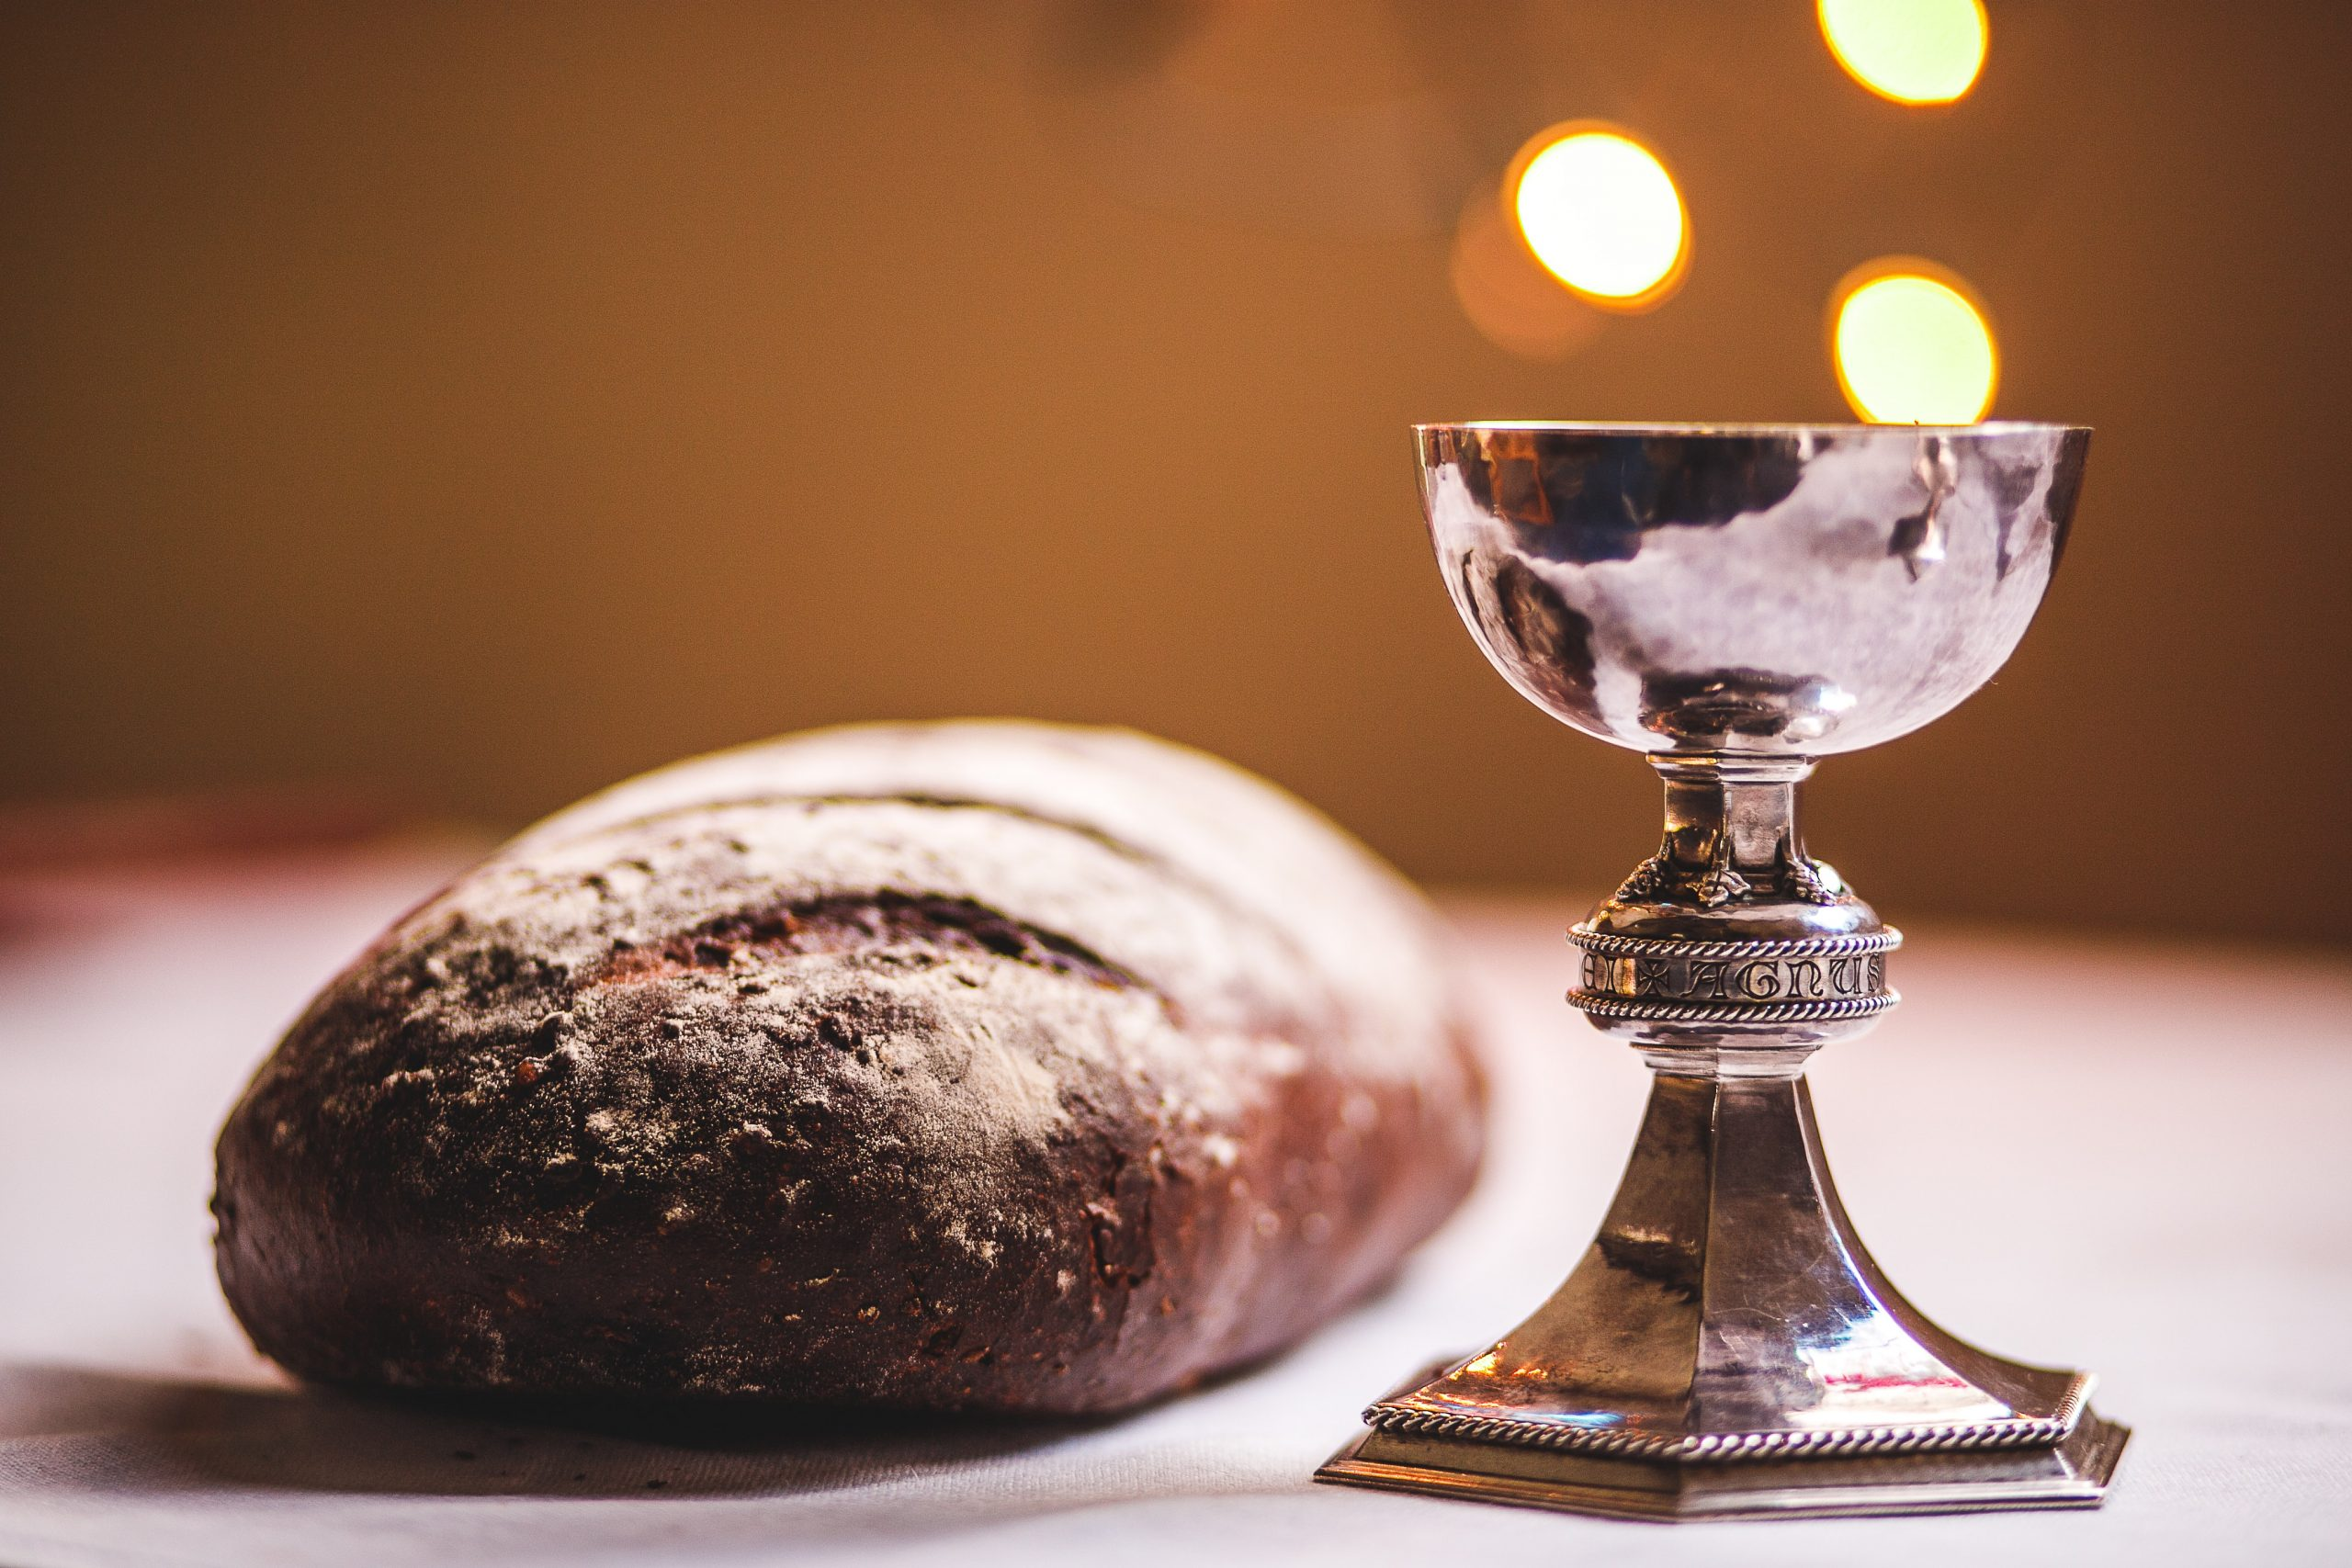 A loaf of bread and a silver goblet are prepared for the sacrament of communion.